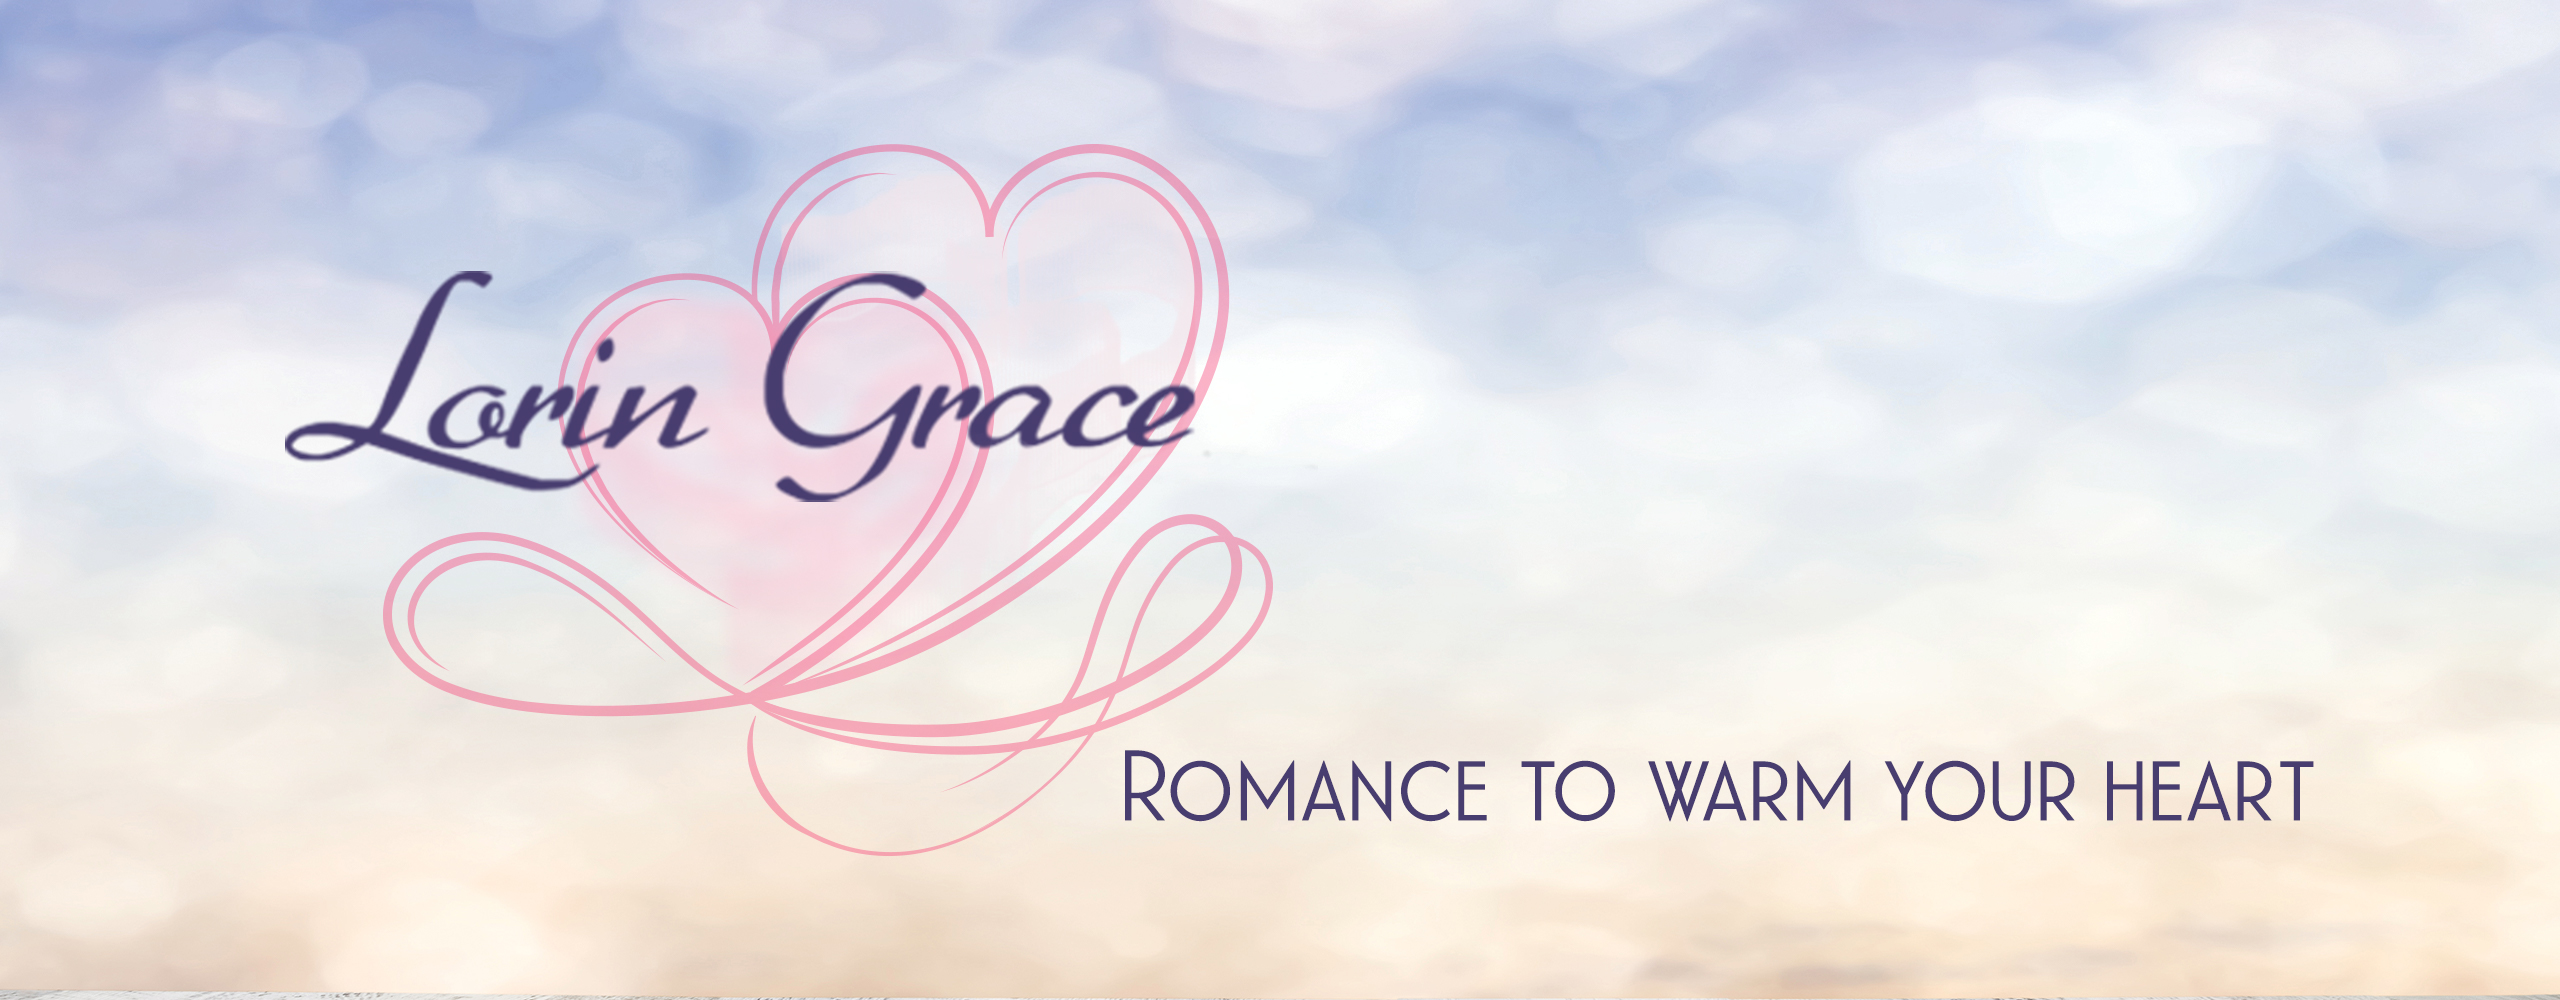 Lorin Grace Romance to warm the Heart